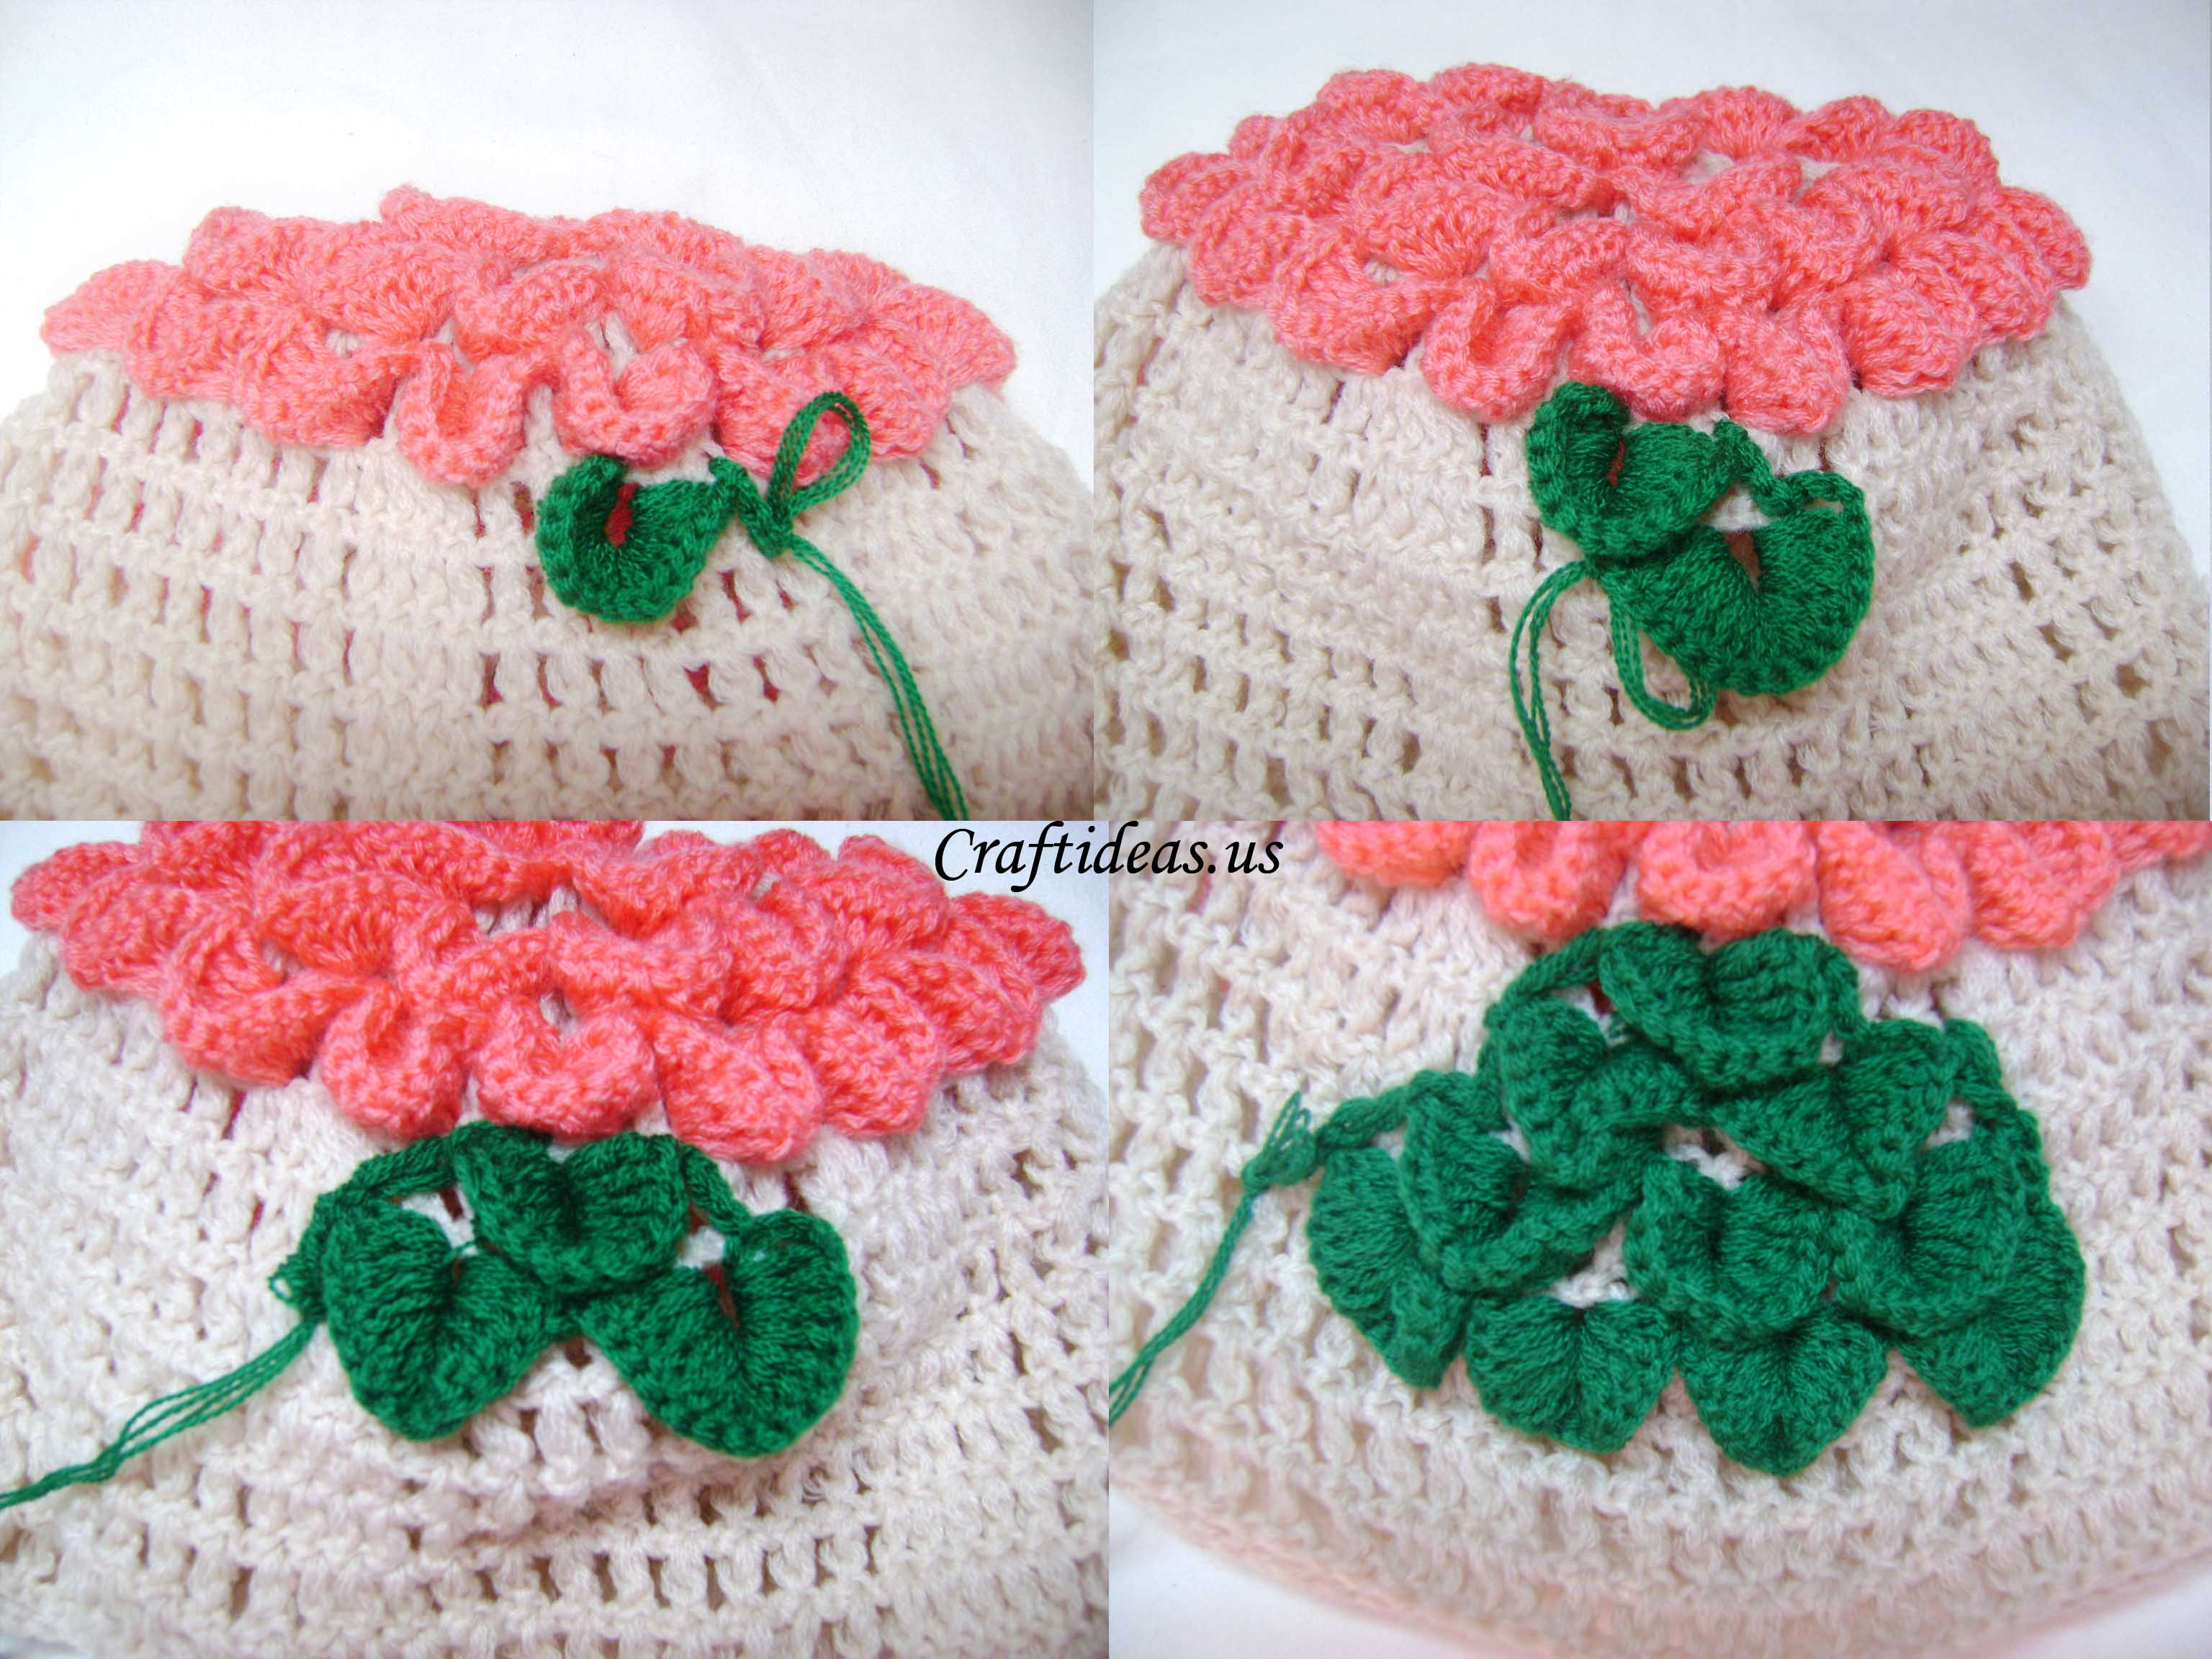 Crocheting Crafts : Christmas ideas: Crochet baby hat - Craft Ideas